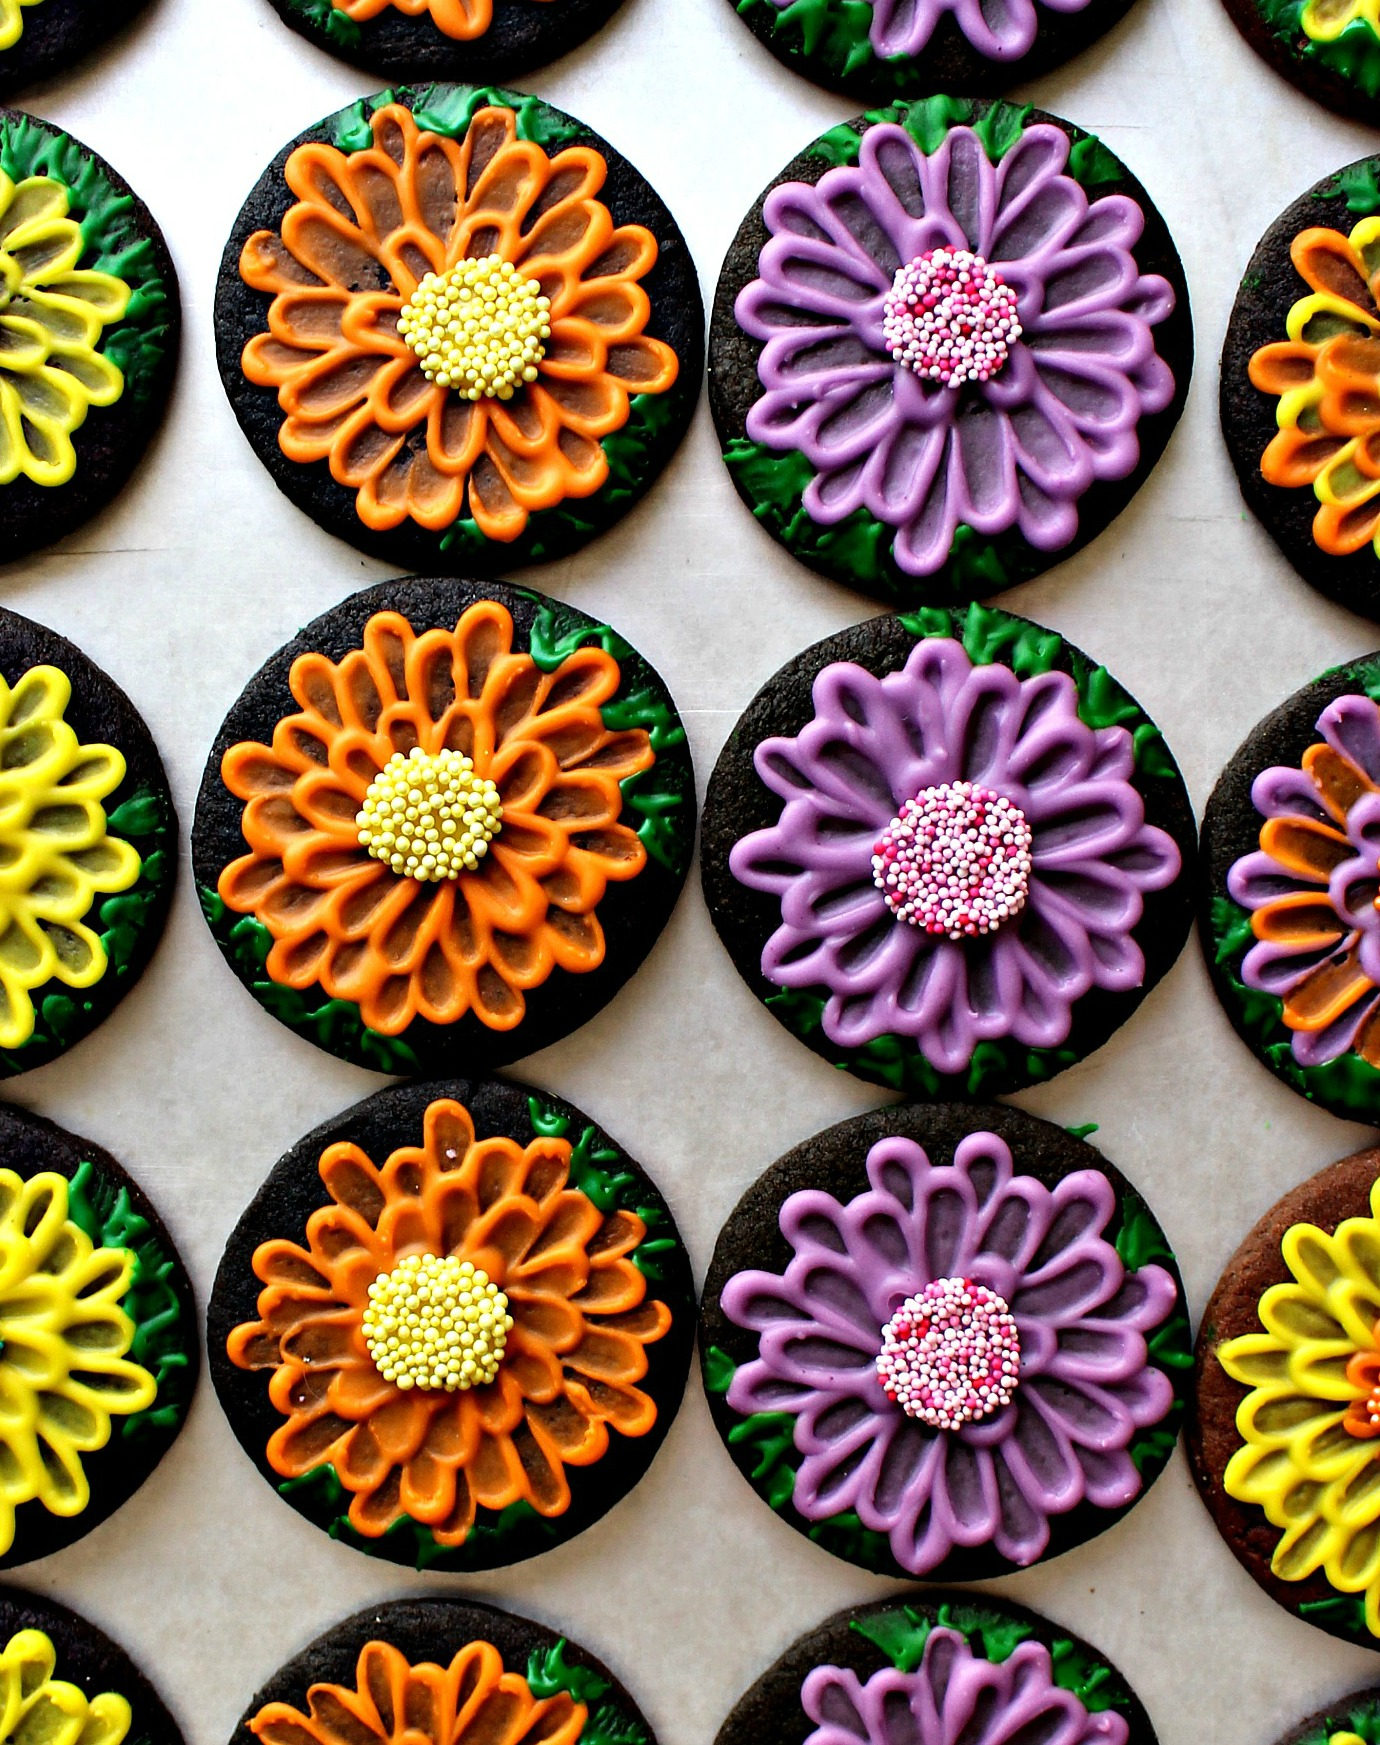 Chocolate sugar cookies decorated with orange, yellow, and purple icing to look like mums.